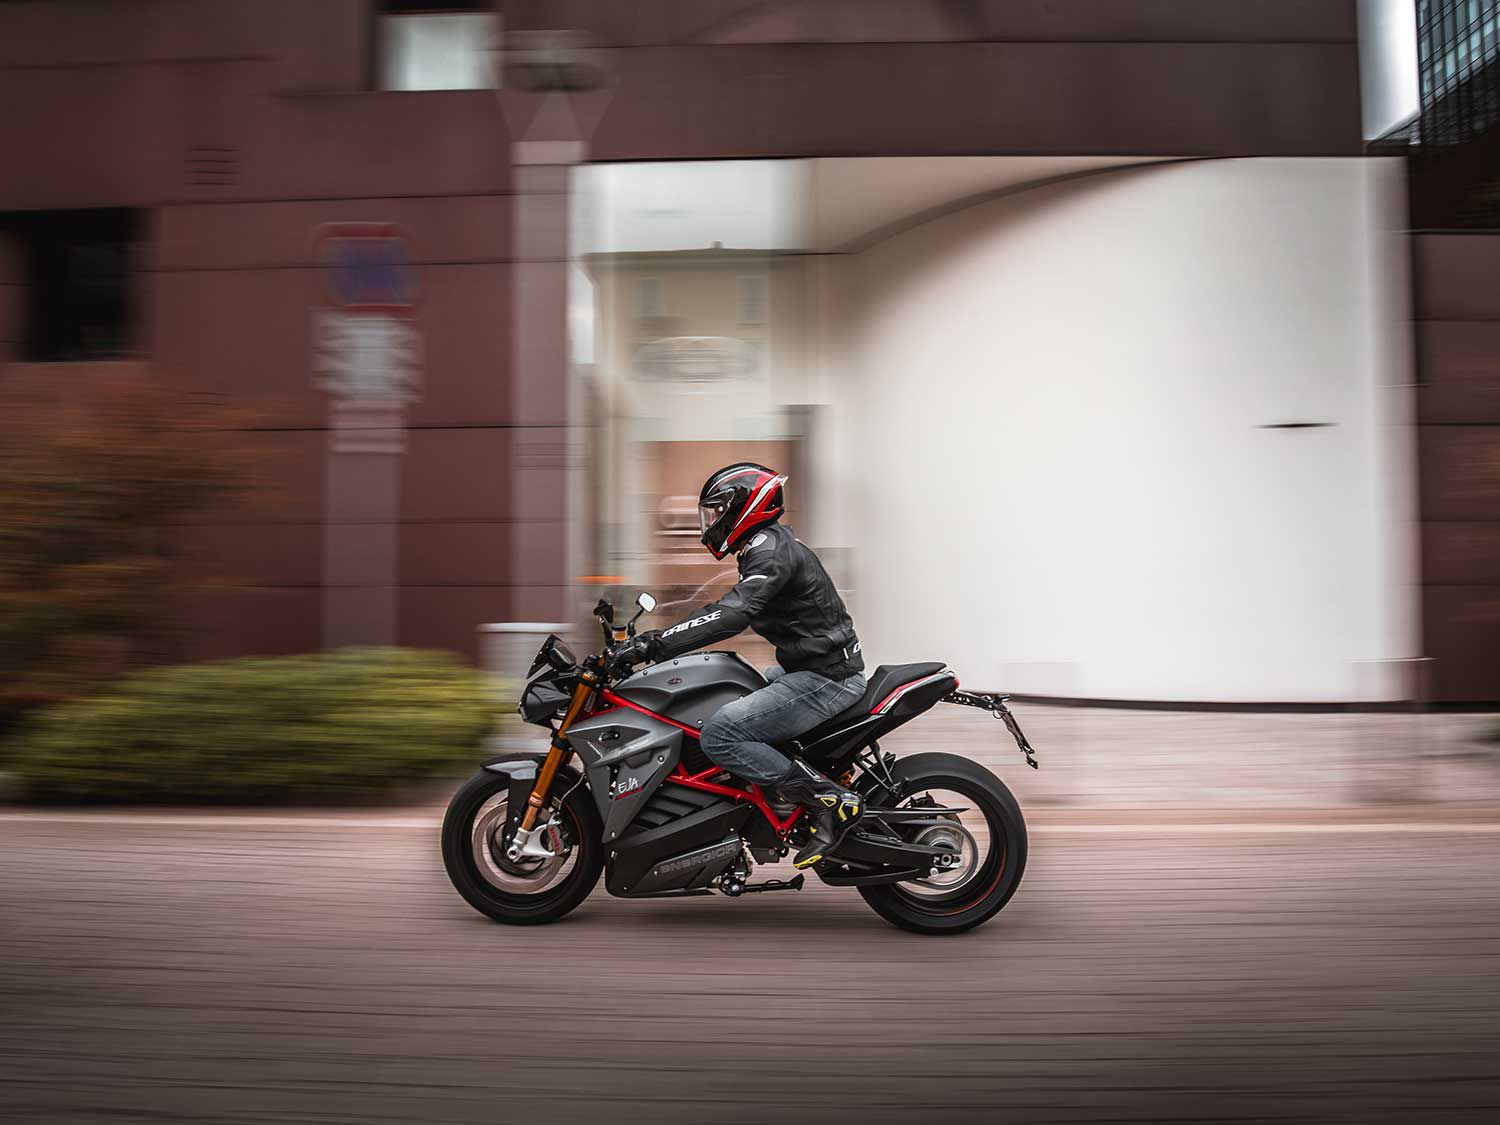 The Eva Ribelle is designed for sport riders looking for a more comfortable motorcycle to ride with its upright riding stance.